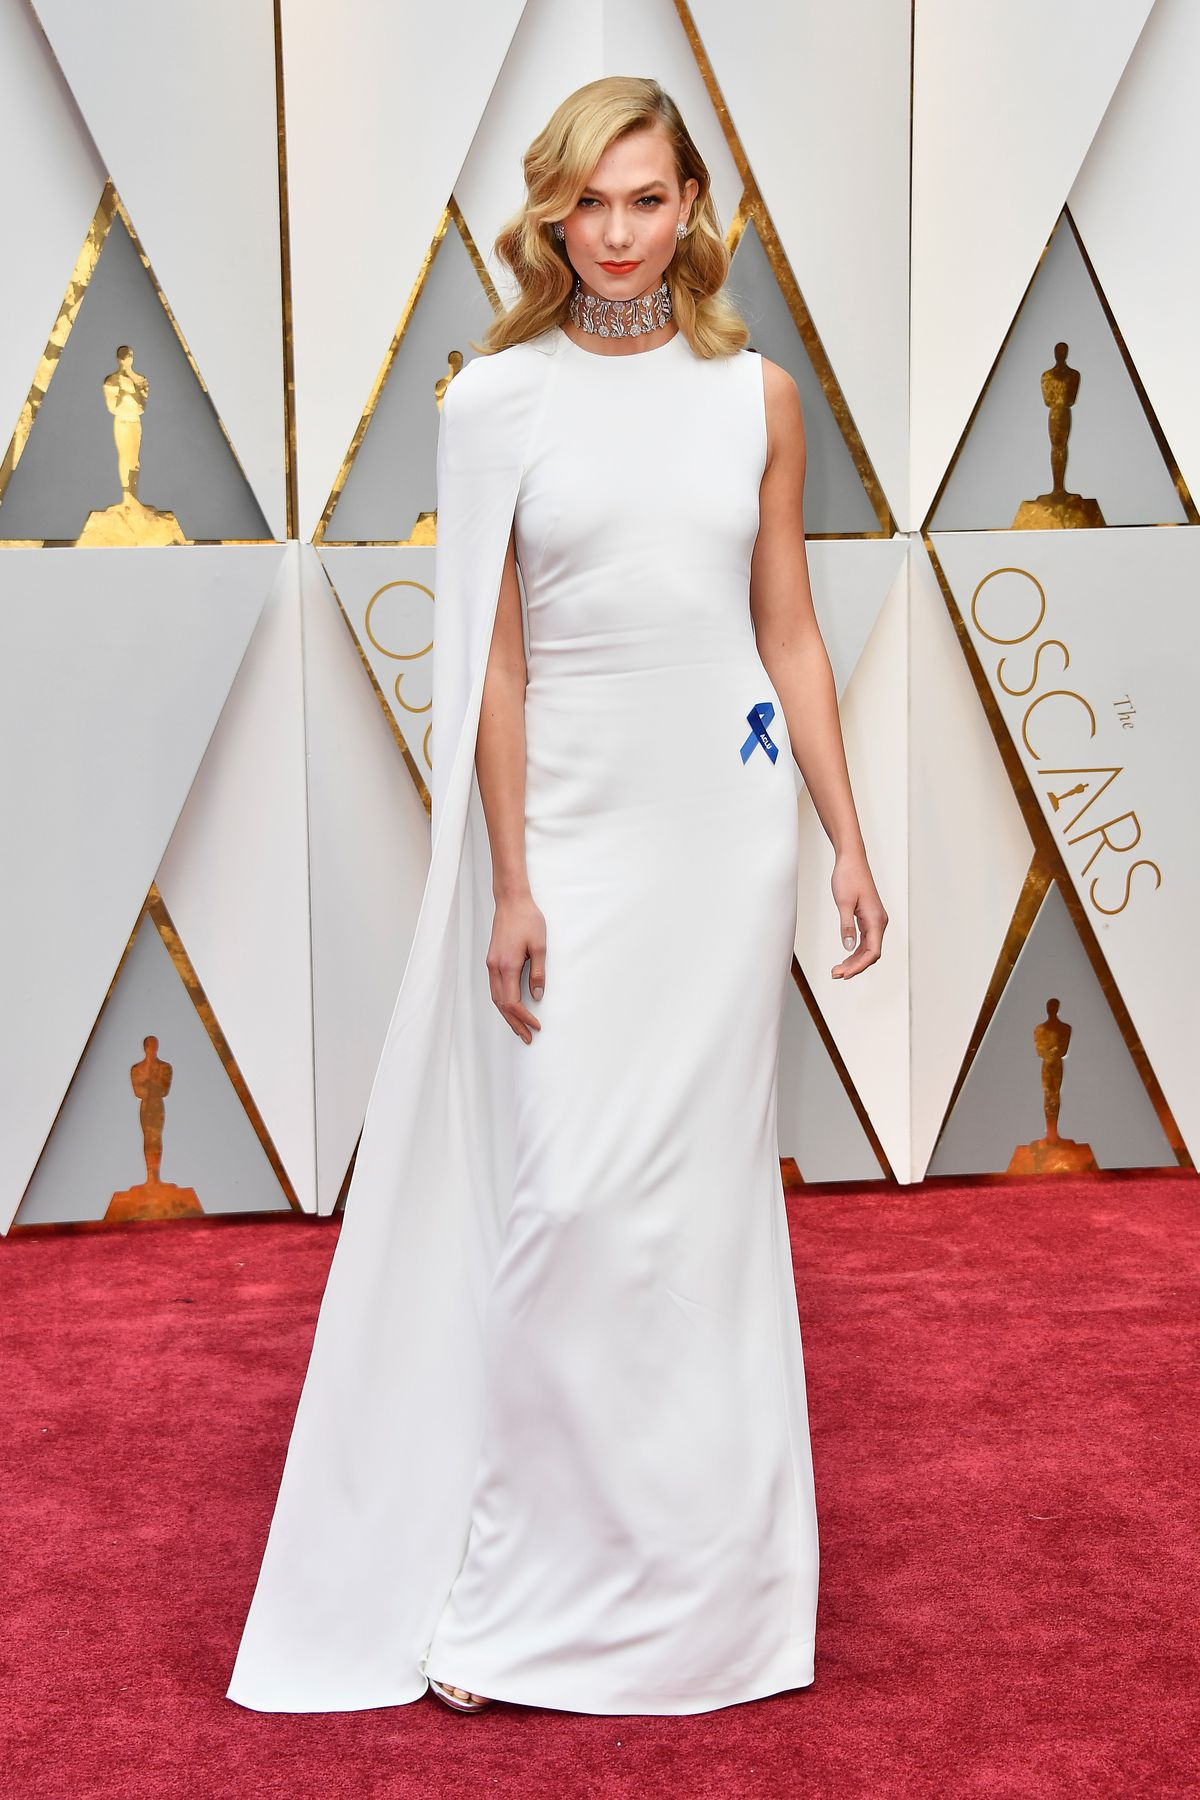 Karlie Kloss with a blue ribbon on the Oscars red carpet